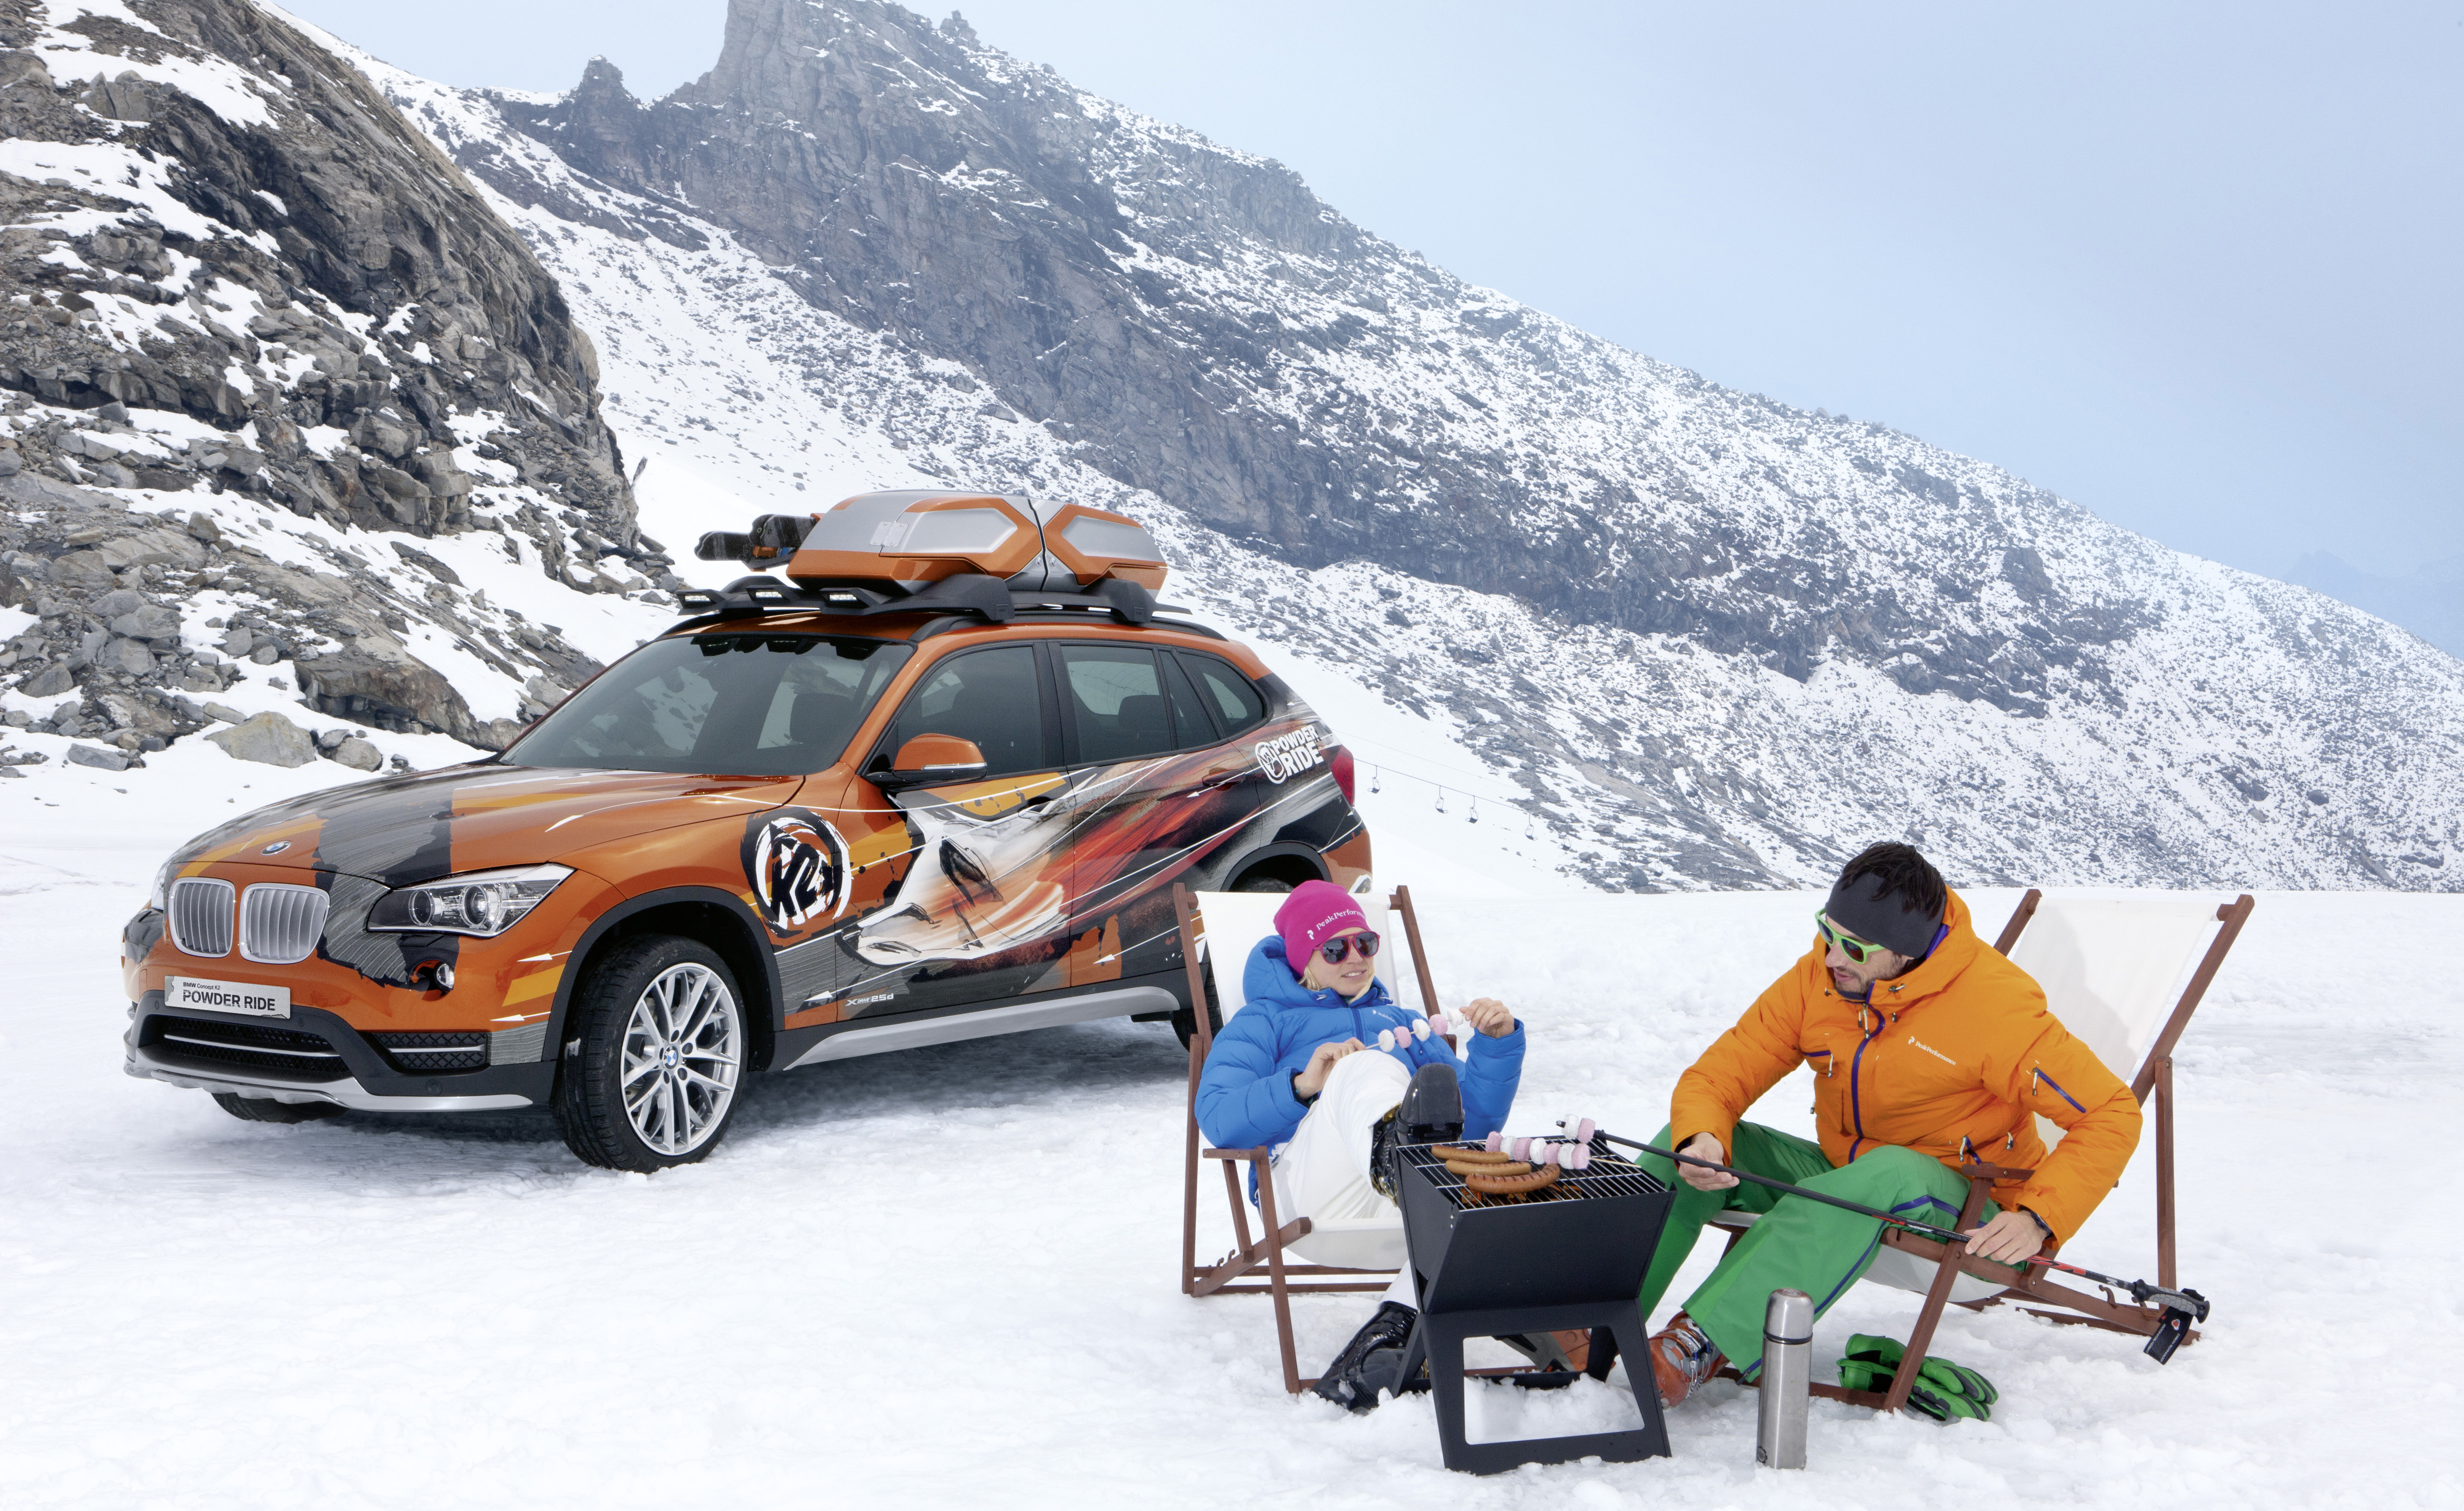 Ski Rack For Car >> BMW X1 'Powder Ride' Kicks off US Vehicle Sales ...